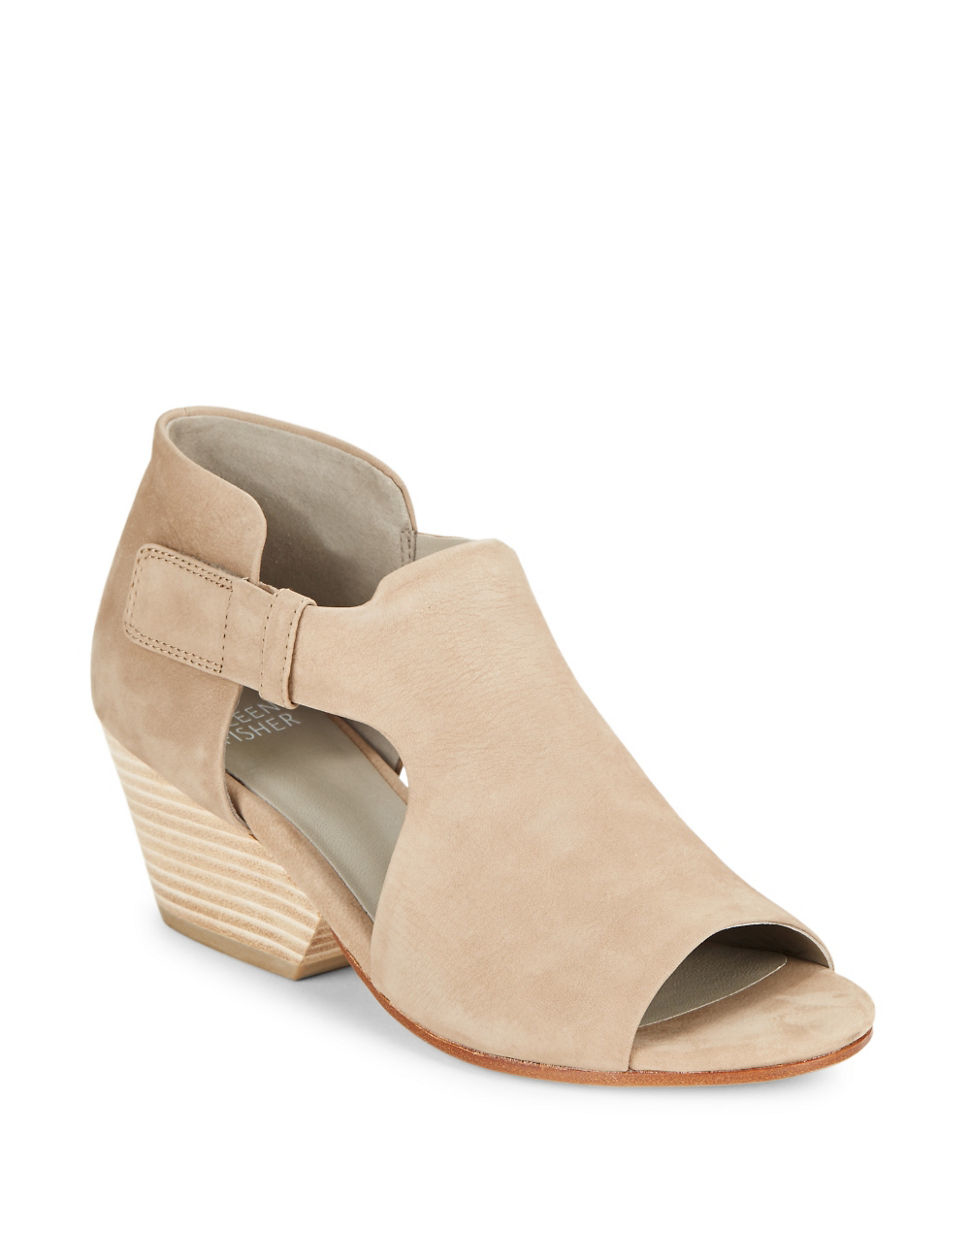 Macy S Eileen Fisher Shoes